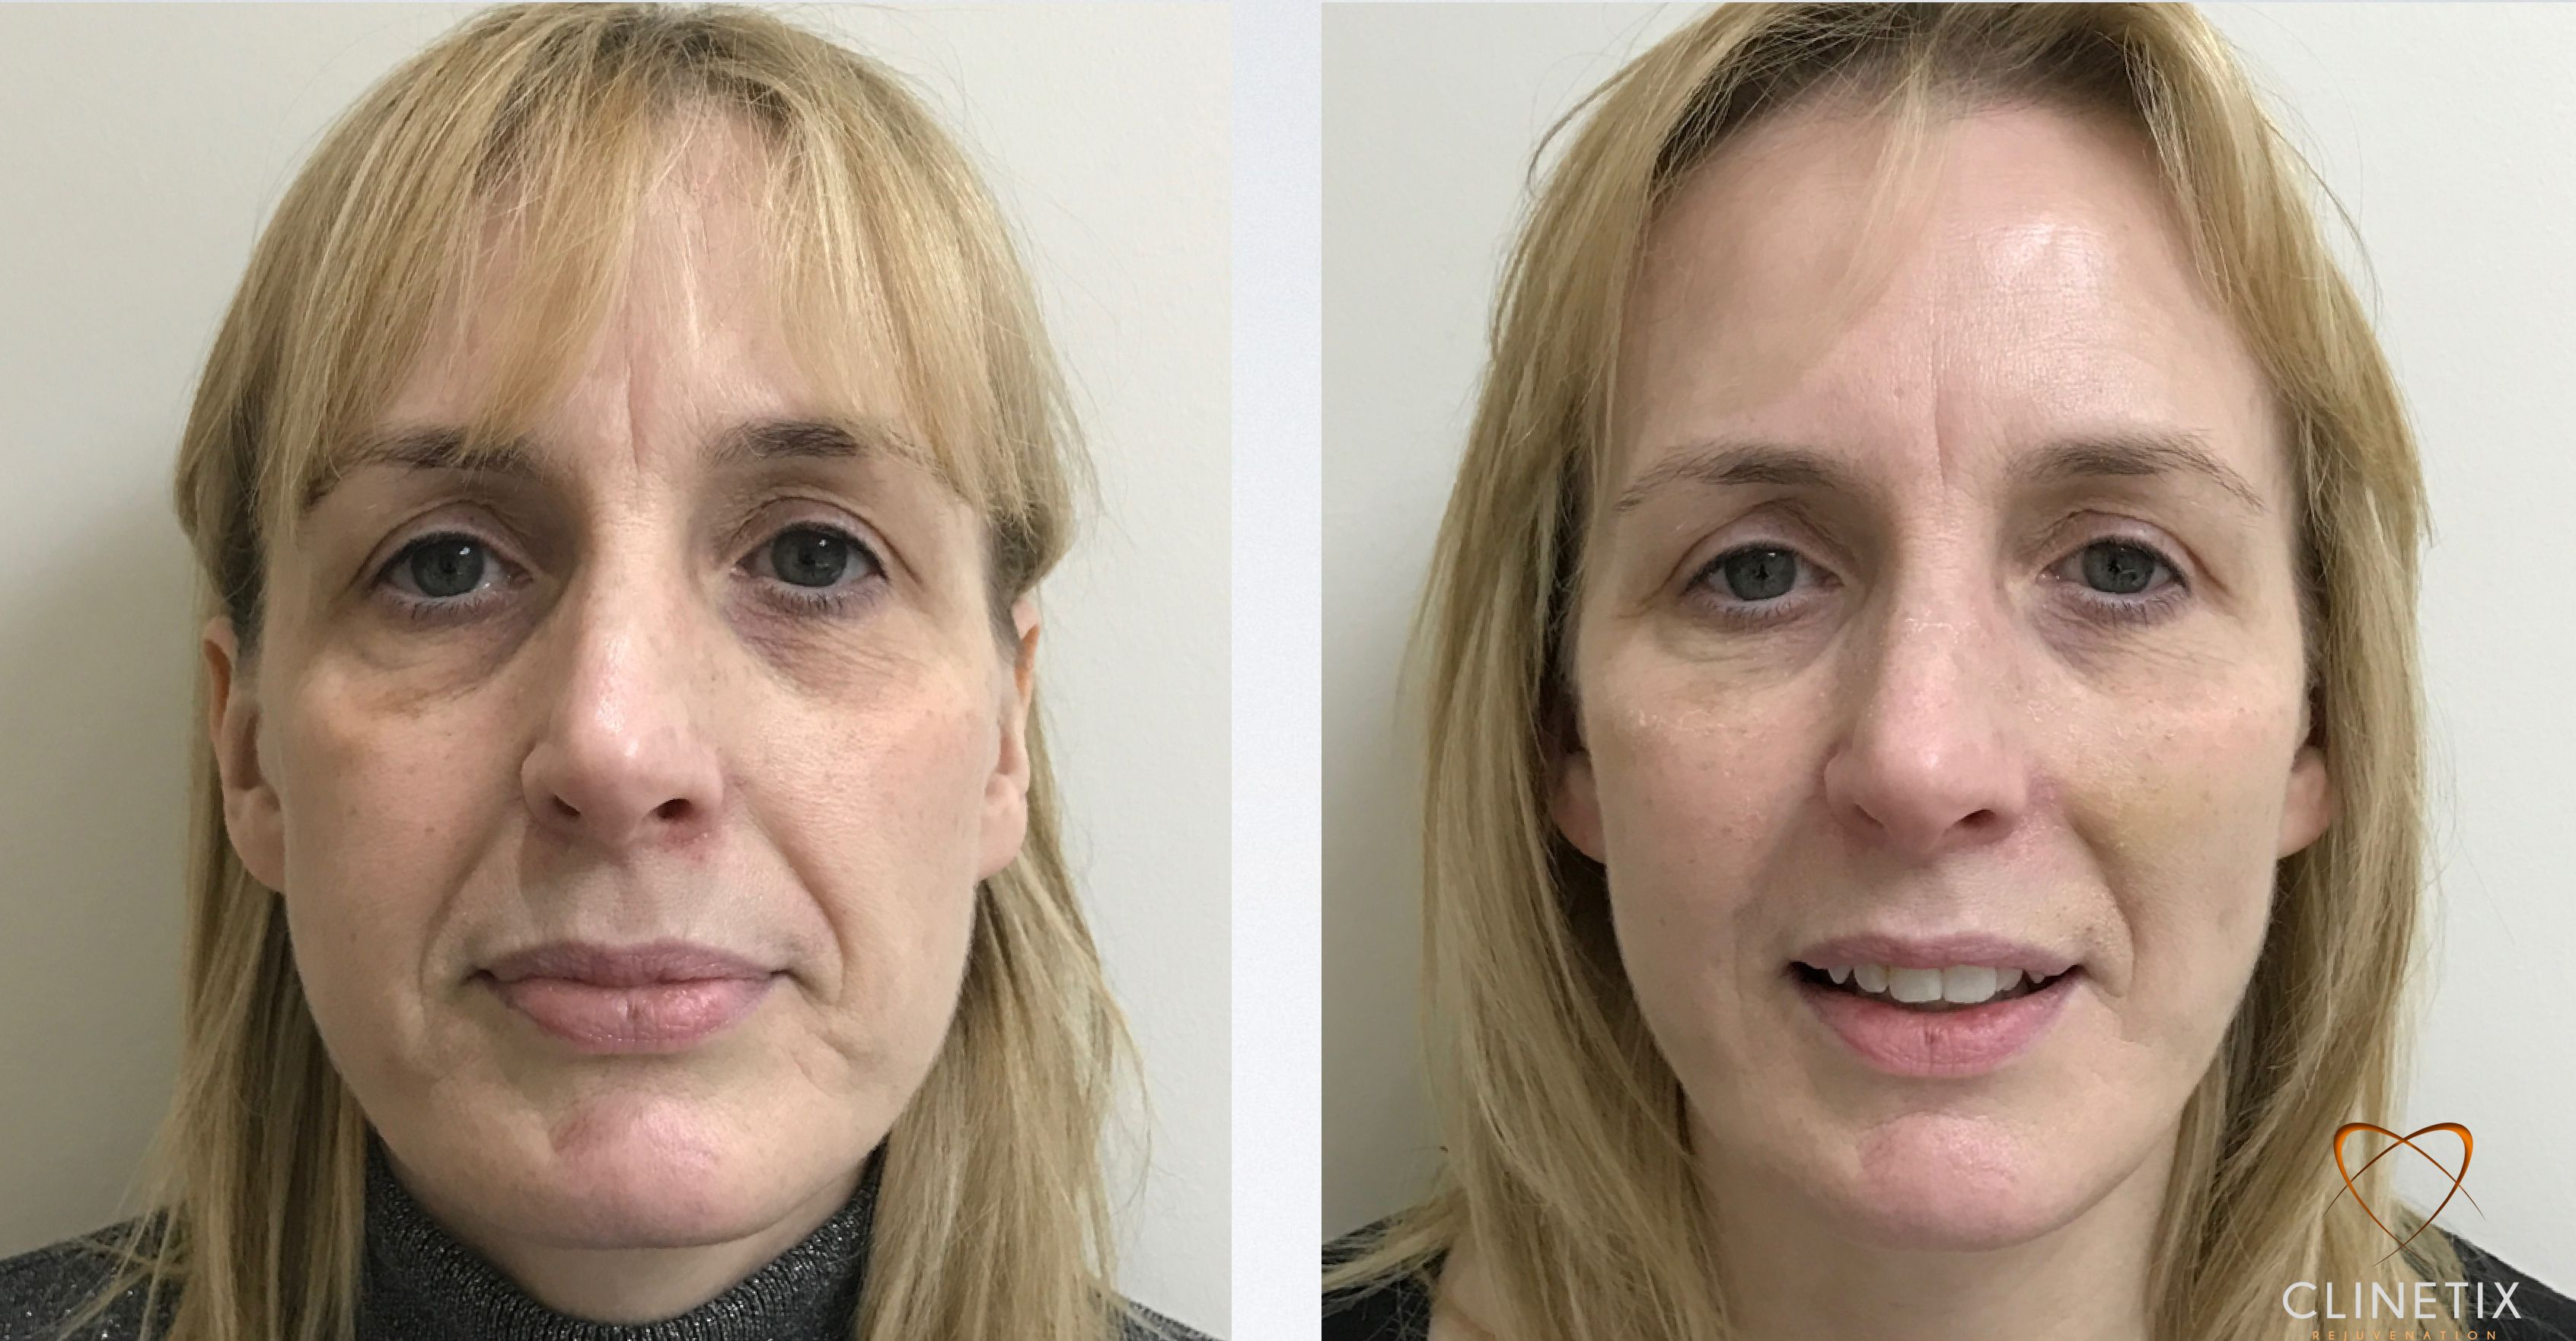 Before & after results achieved with the Clinetix Volume Replacement